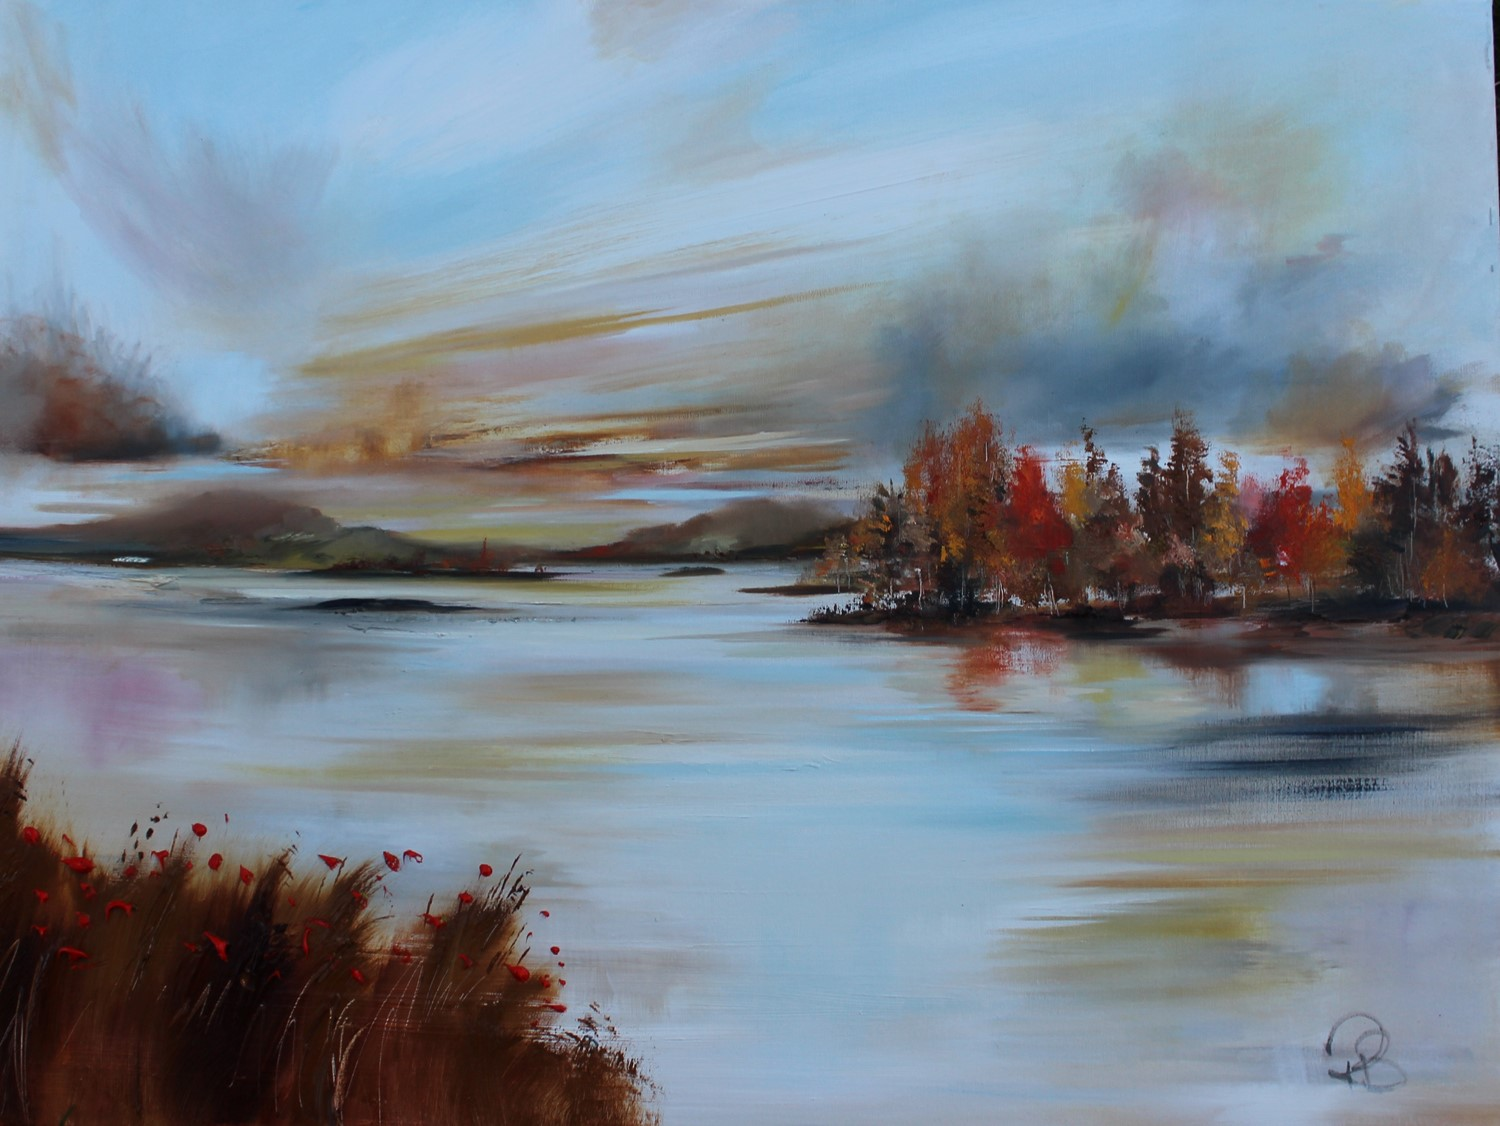 'By the side of the Loch in Autumn ' by artist Rosanne Barr